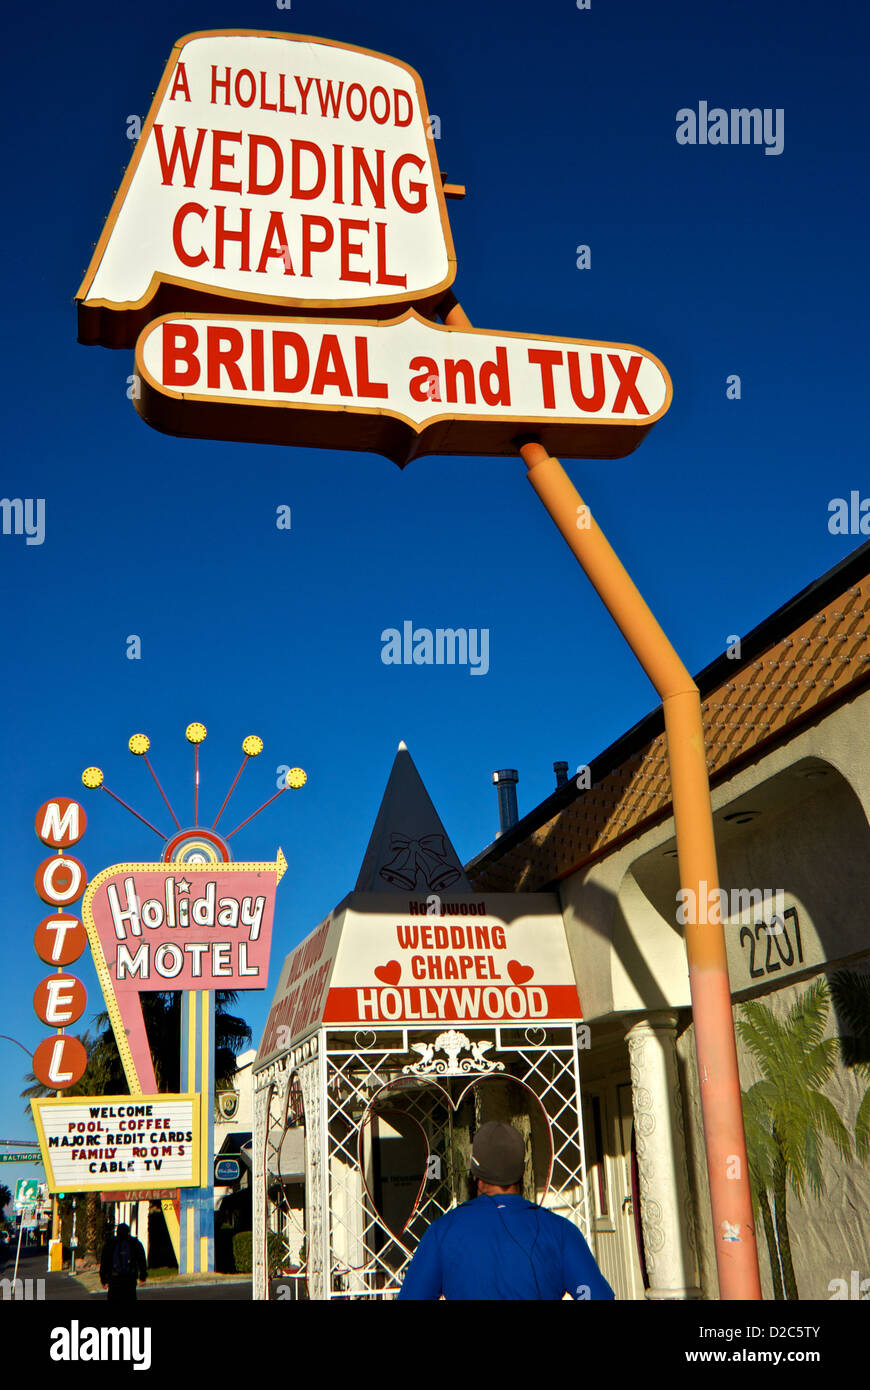 Seedy Old Section Of Las Vegas Boulevard Strip Holiday Motel Hollywood Wedding Chapel